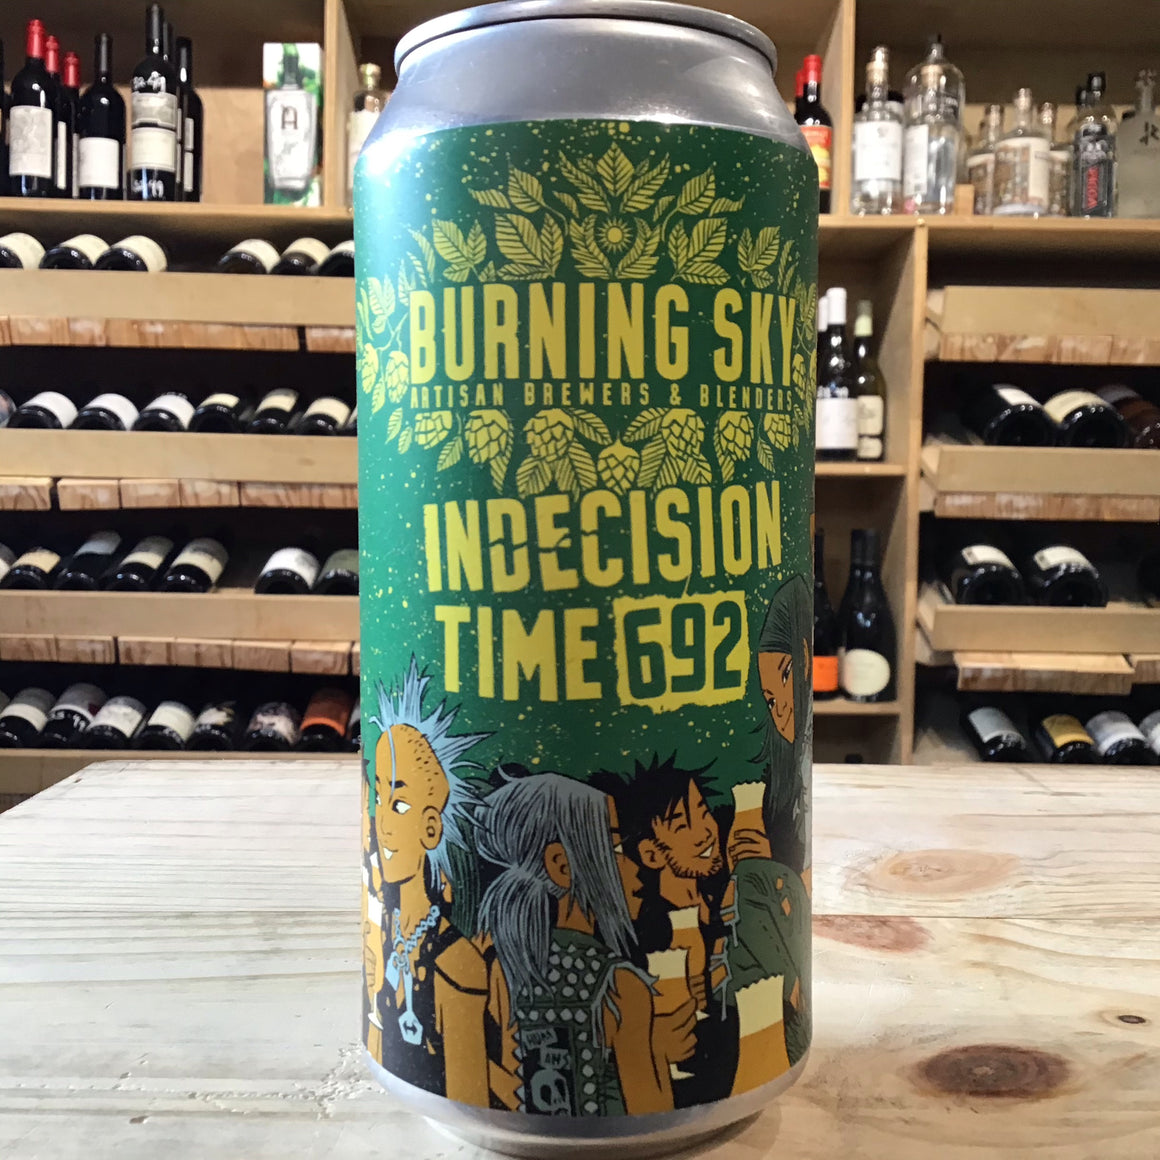 Burning Sky Indecision Time 692 44cl can 5.6% Abv